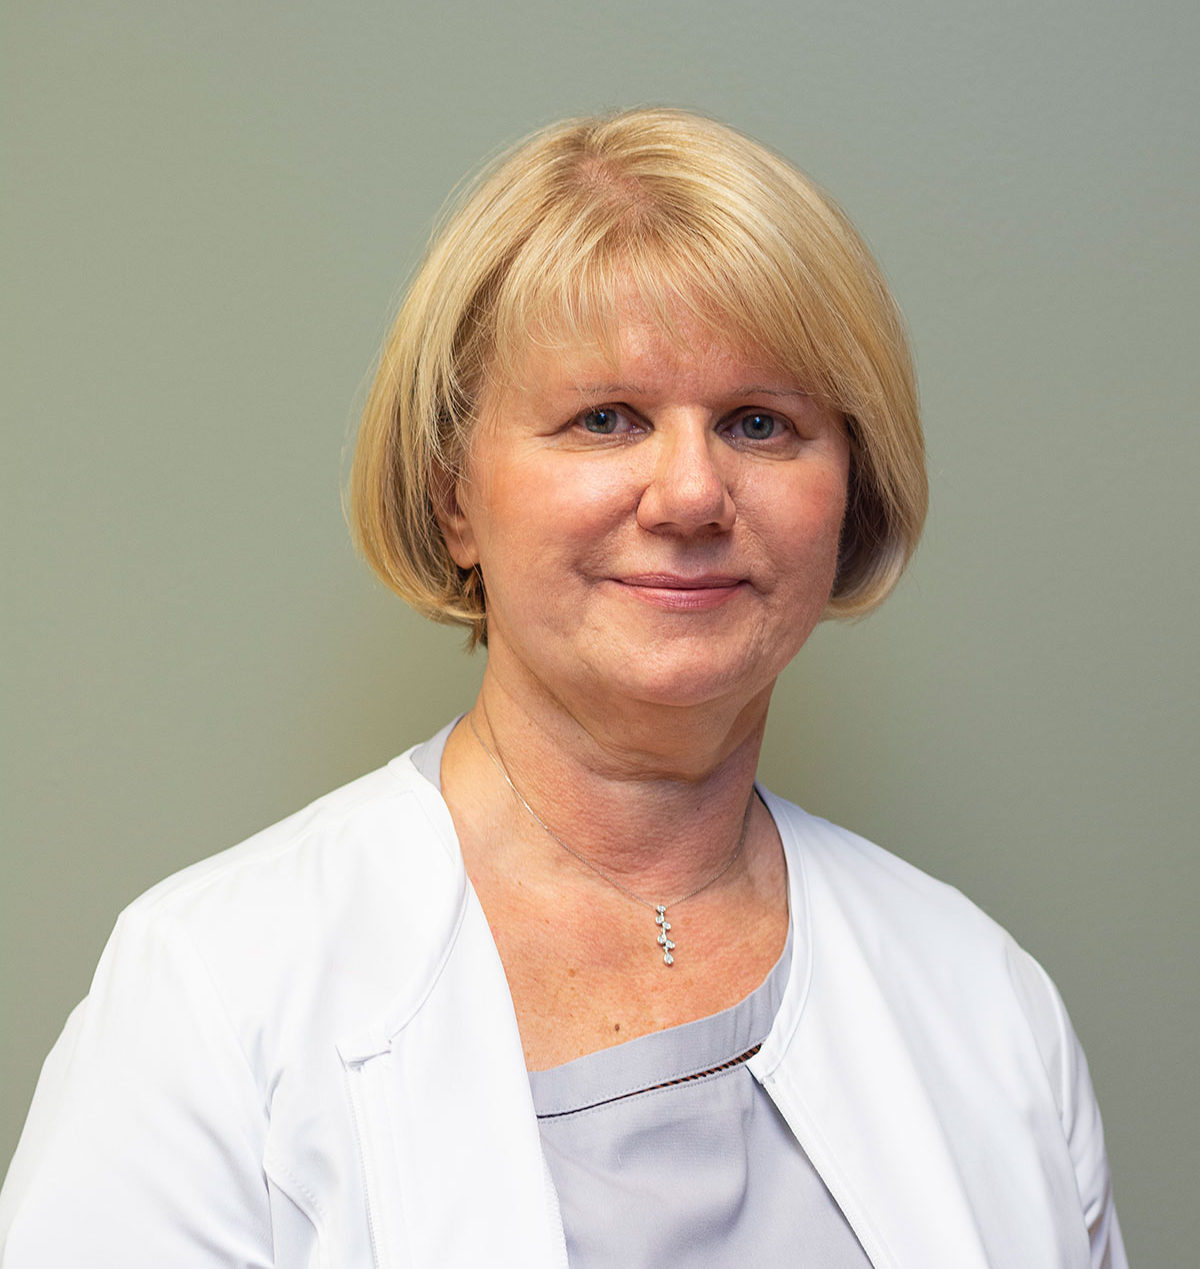 Dr. Anna Nowobilska M.D. Clinical Instructor